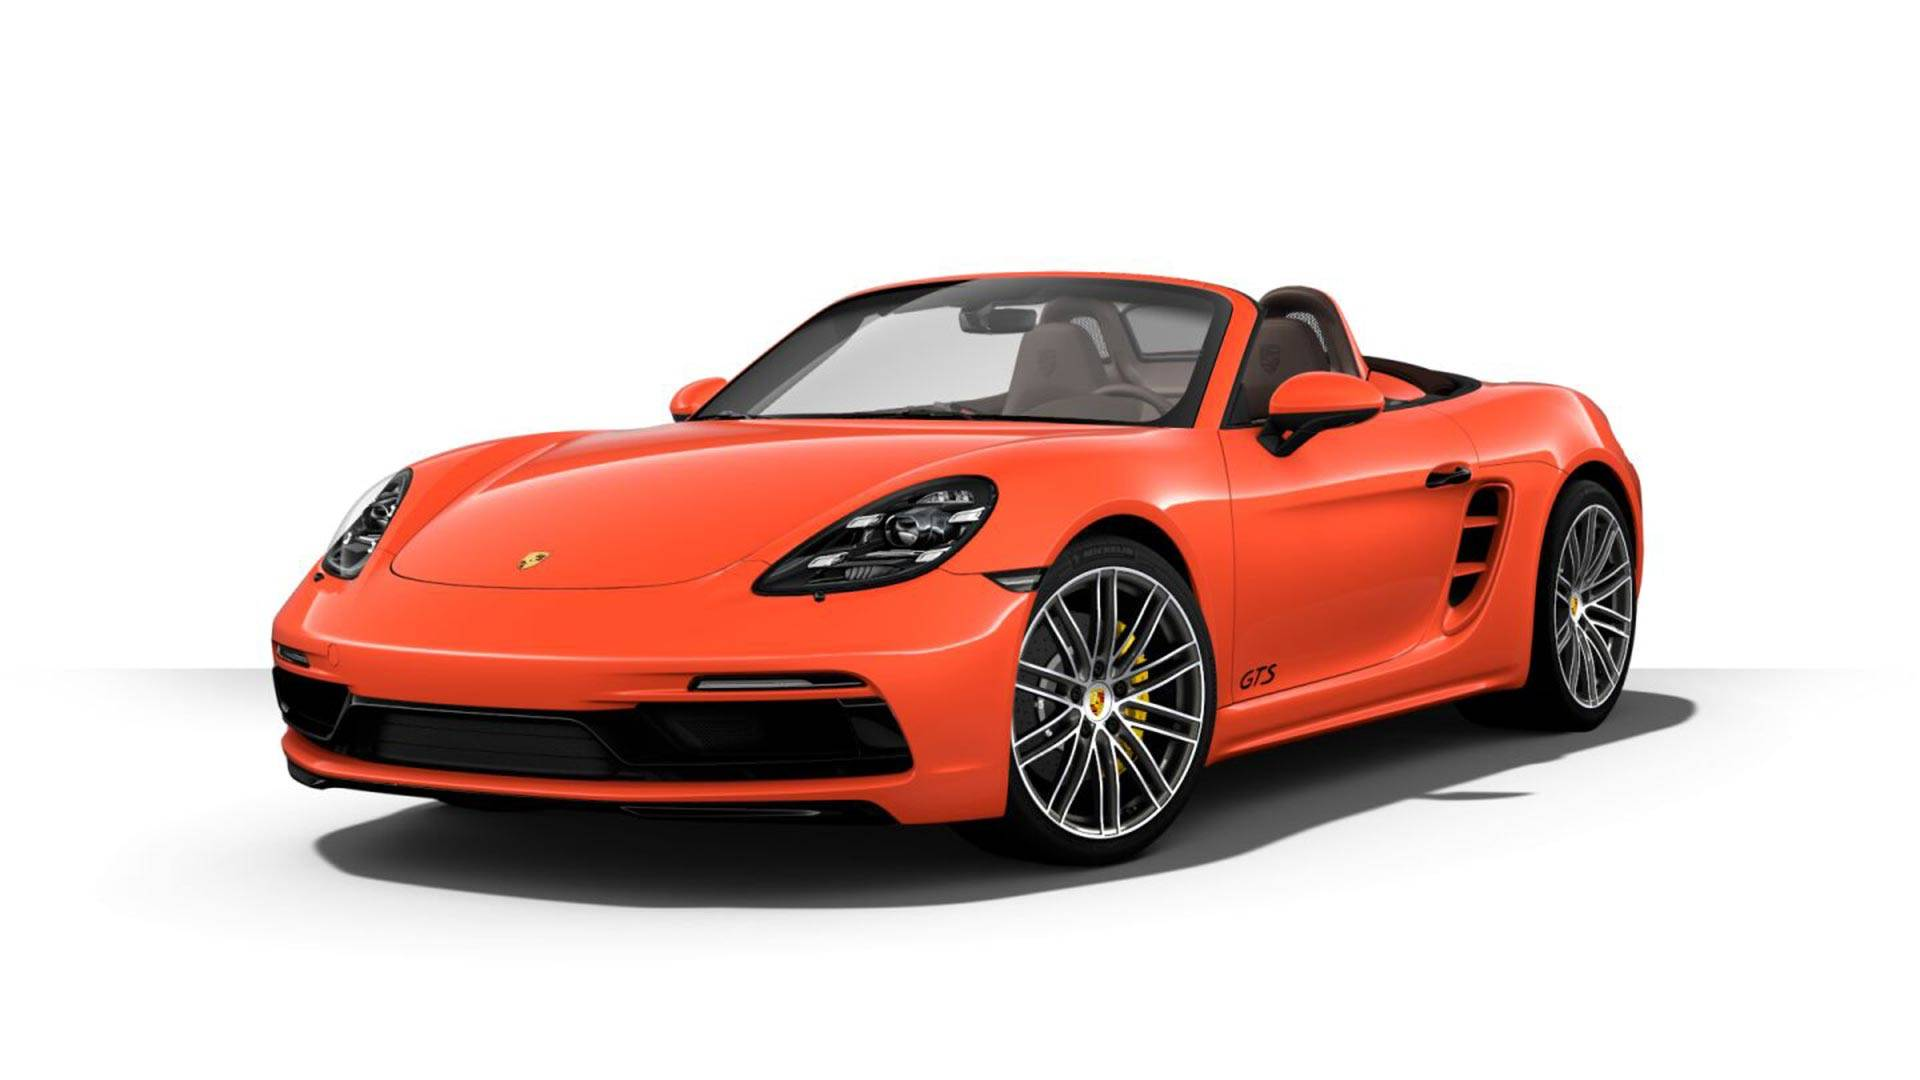 Porsche News and Reviews | Motor1.com UK